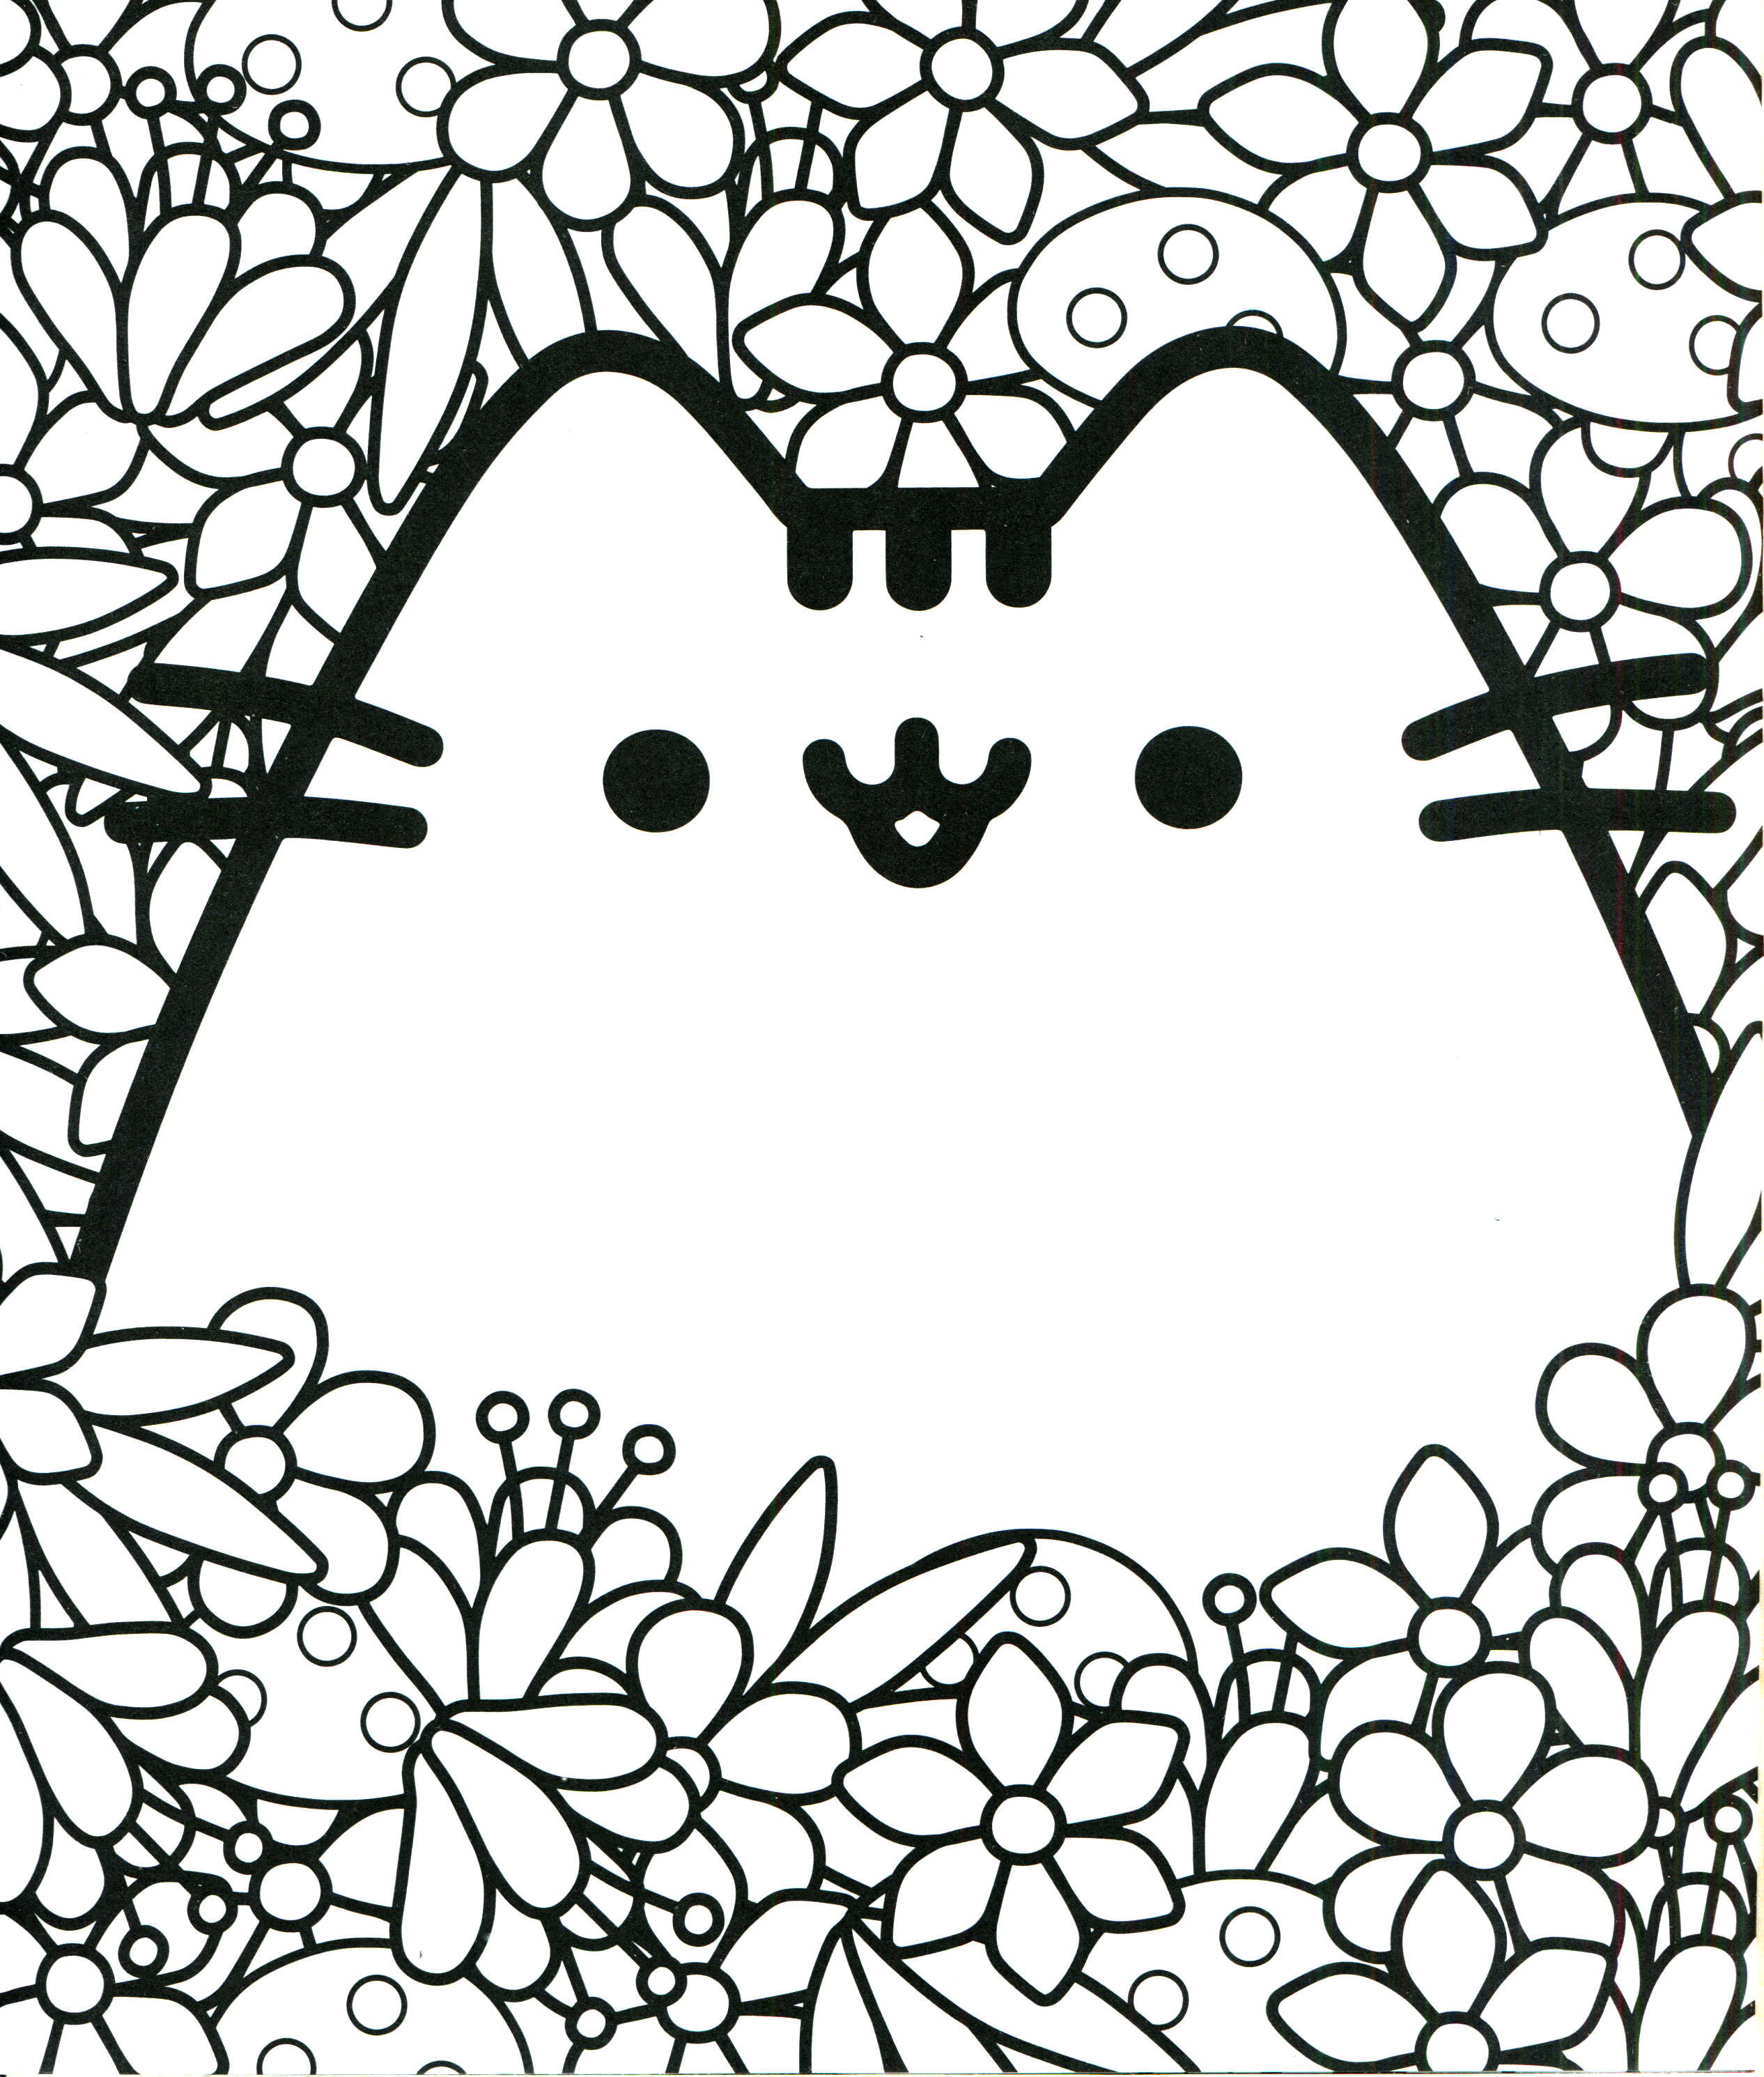 Pusheen Coloring Book Pusheen Pusheen the Cat | Color | Pinterest ...